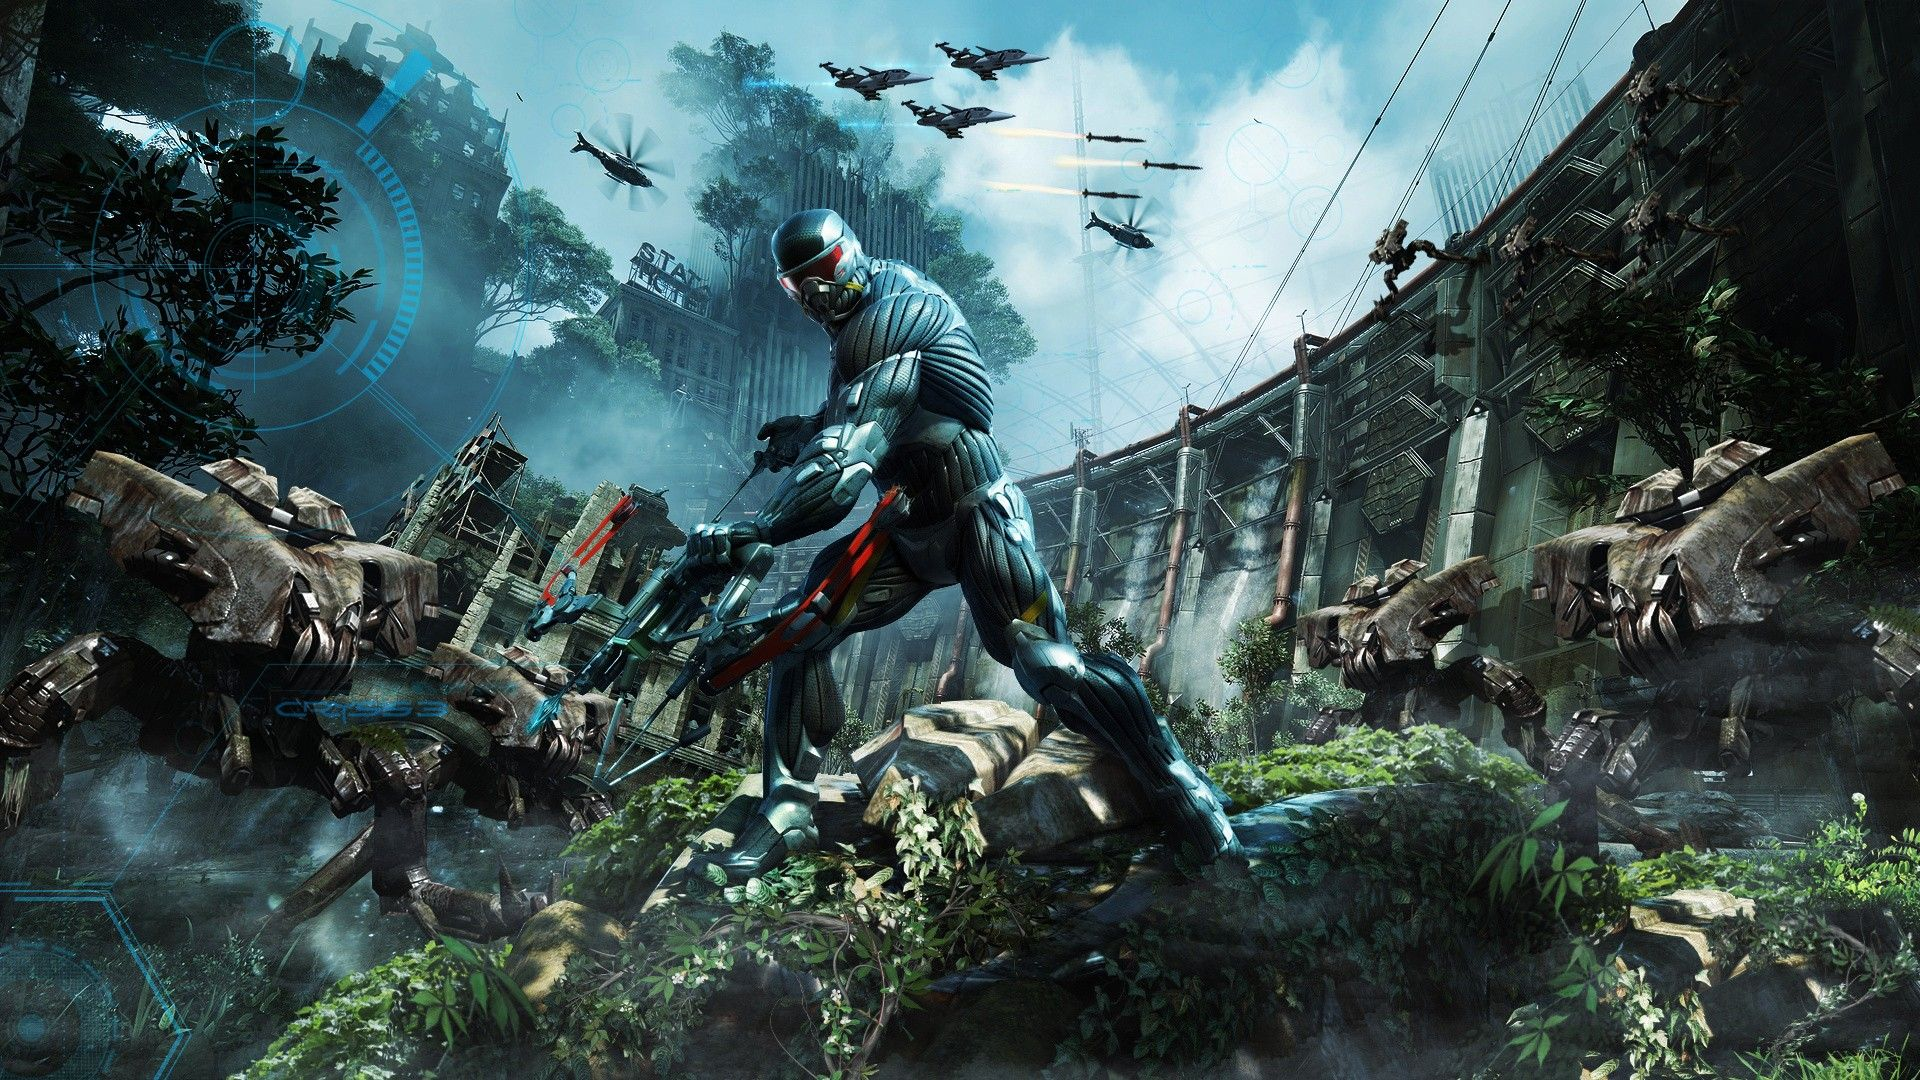 Crysis 3 Wallpaper Wallpaper Hd Wallpaper Wallpaper Backgrounds